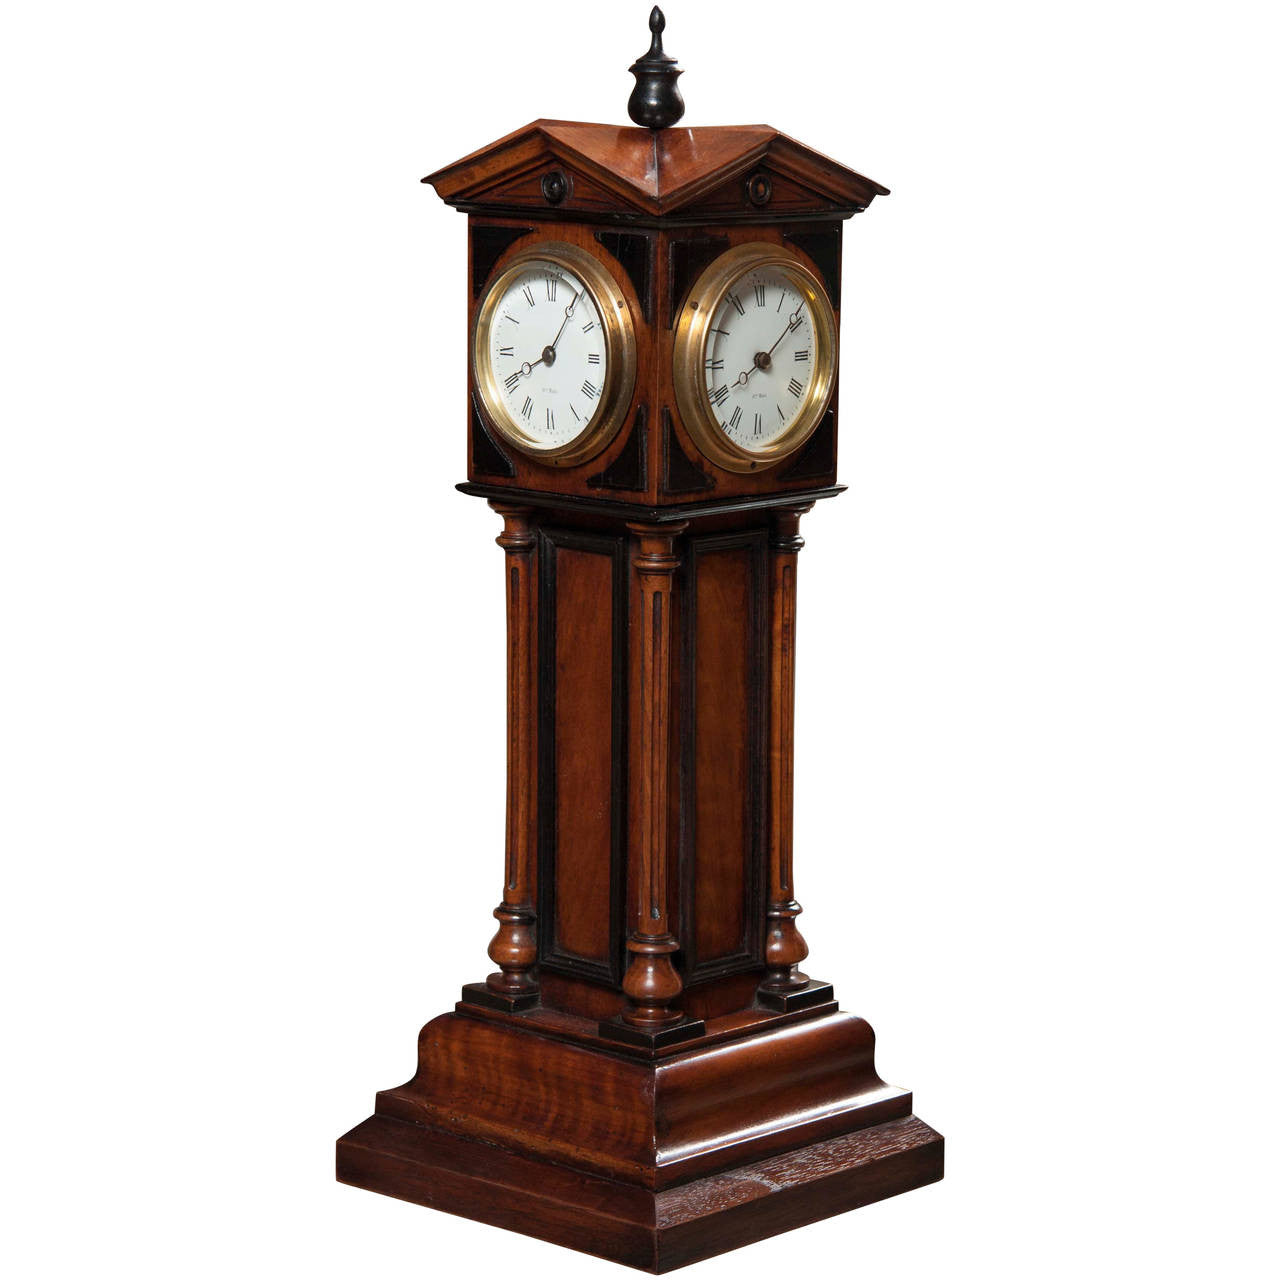 Walnut 4 Dial Tower Table Clock by Patent, Blumberg & Co, Ltd., Paris & London